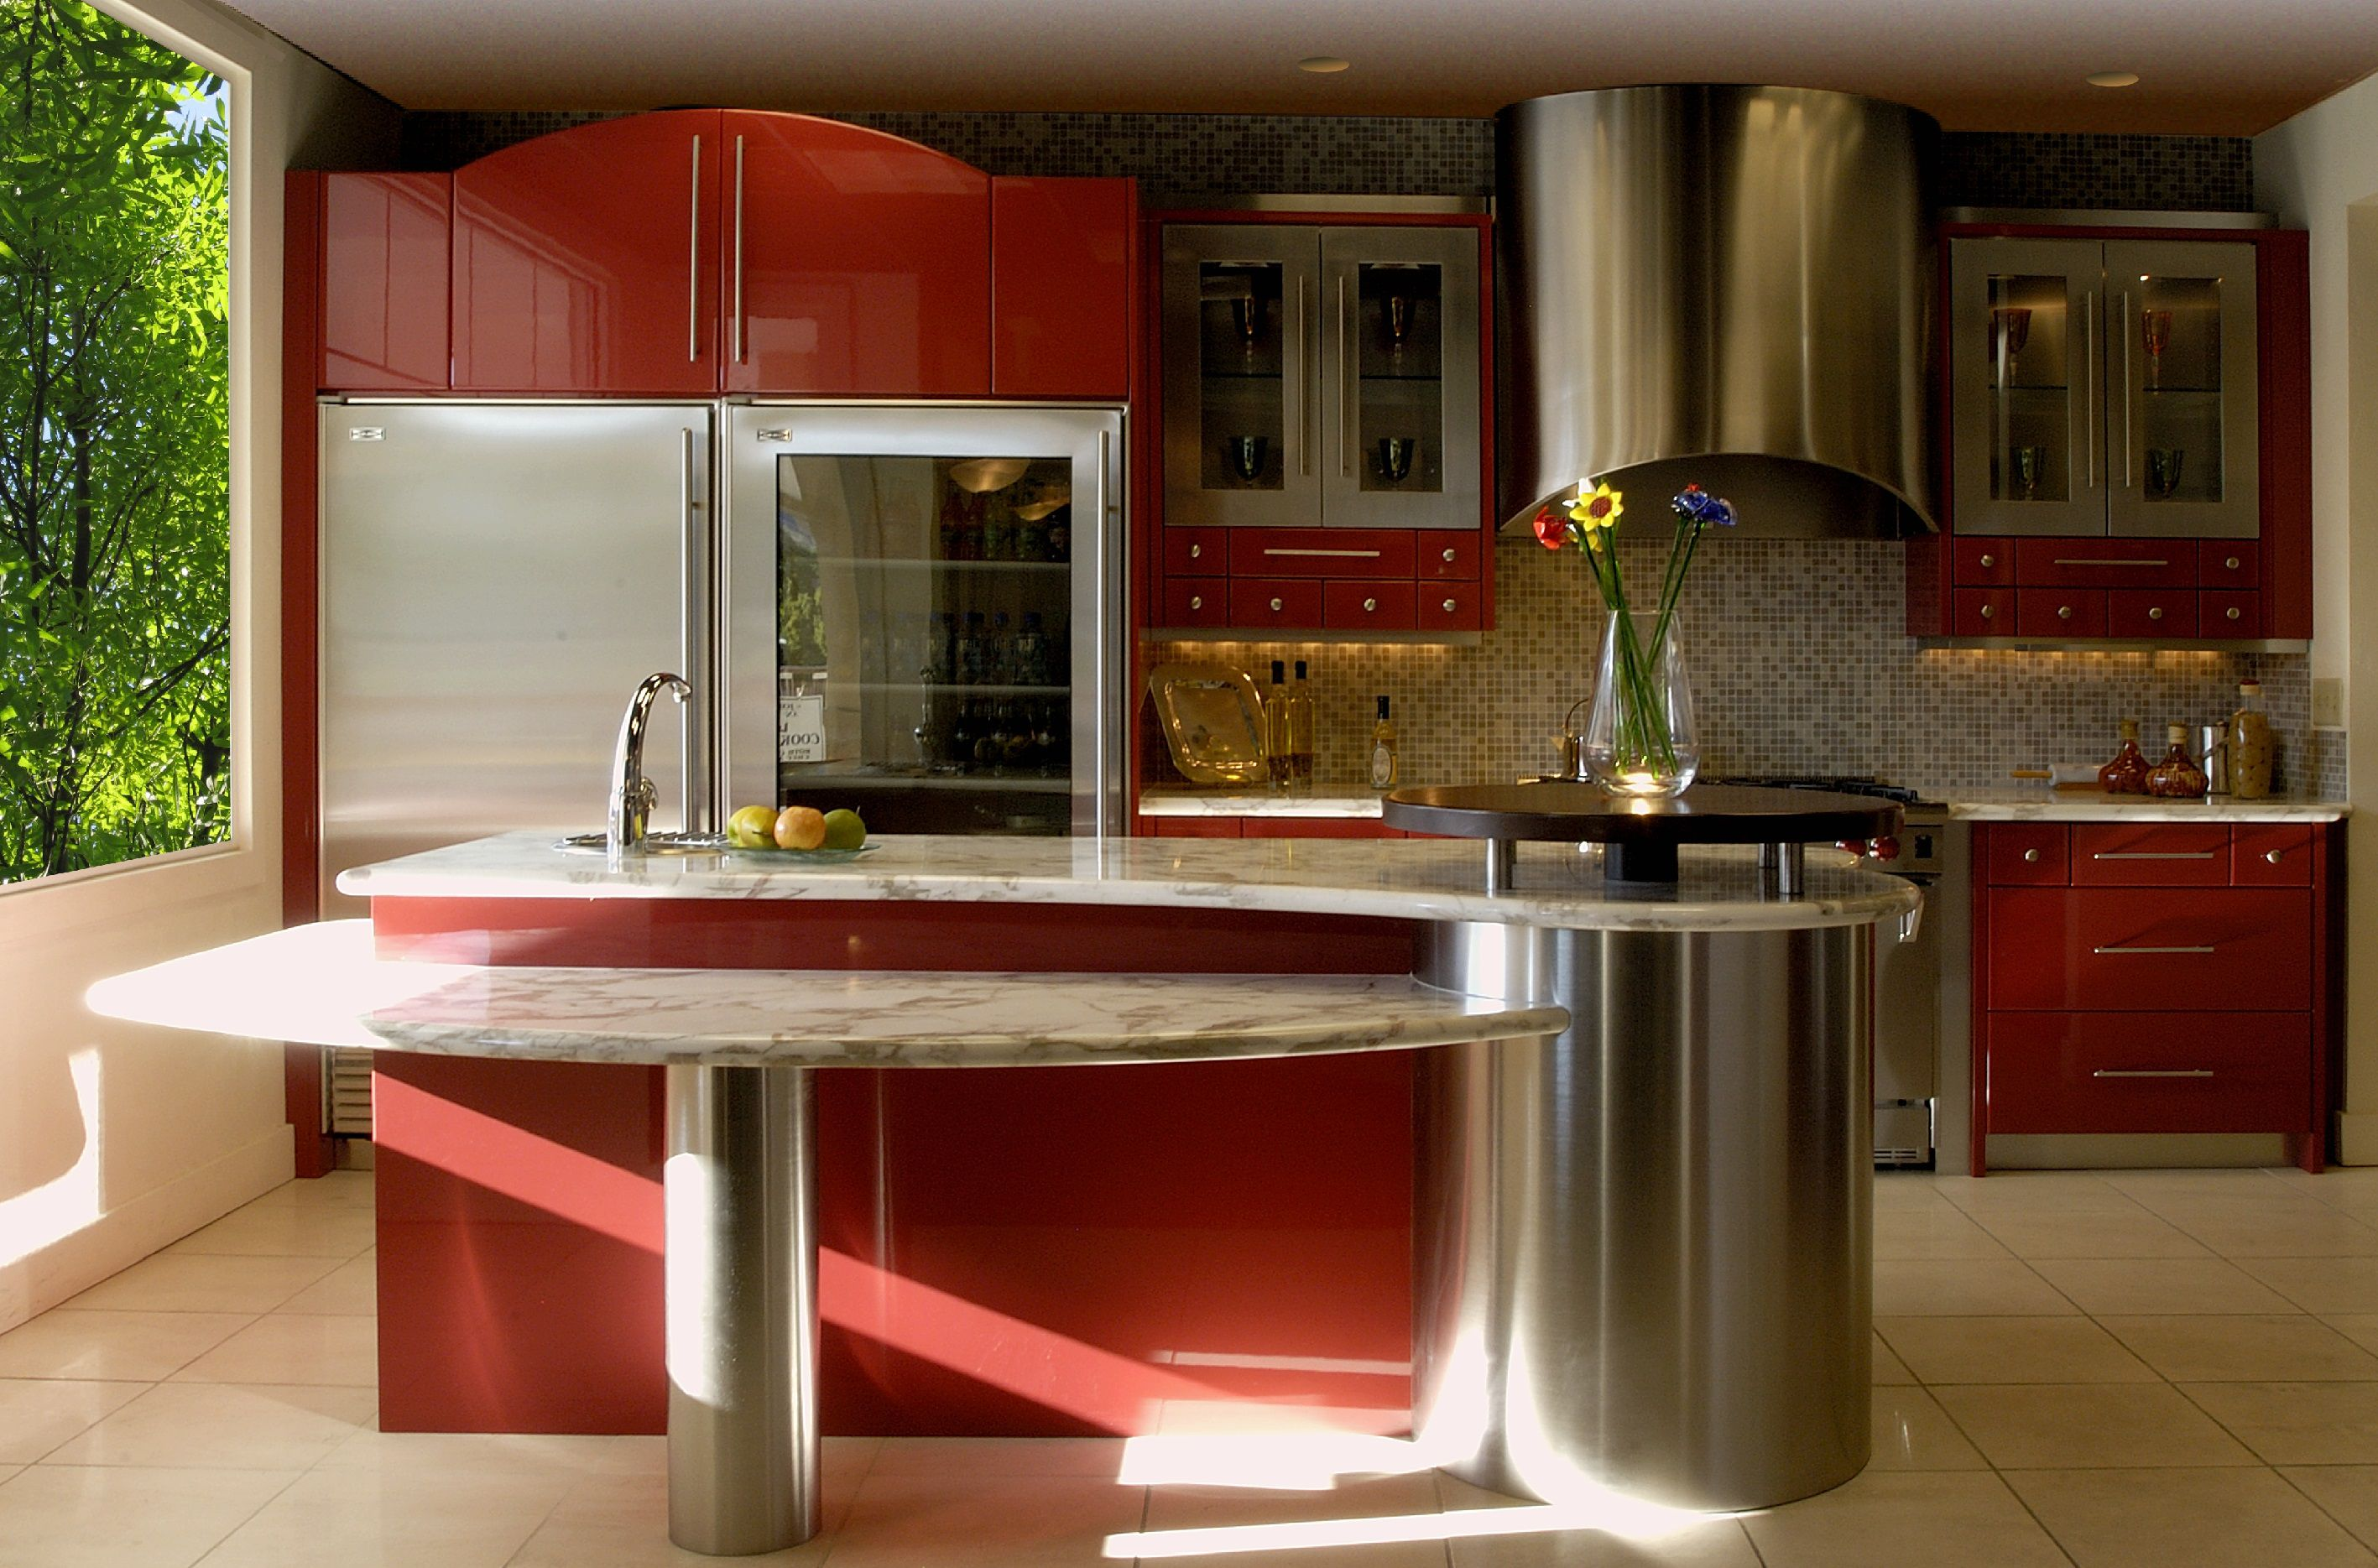 Pleasing Interior For Spacious Room Using Modern Red Kitchen Cabinets